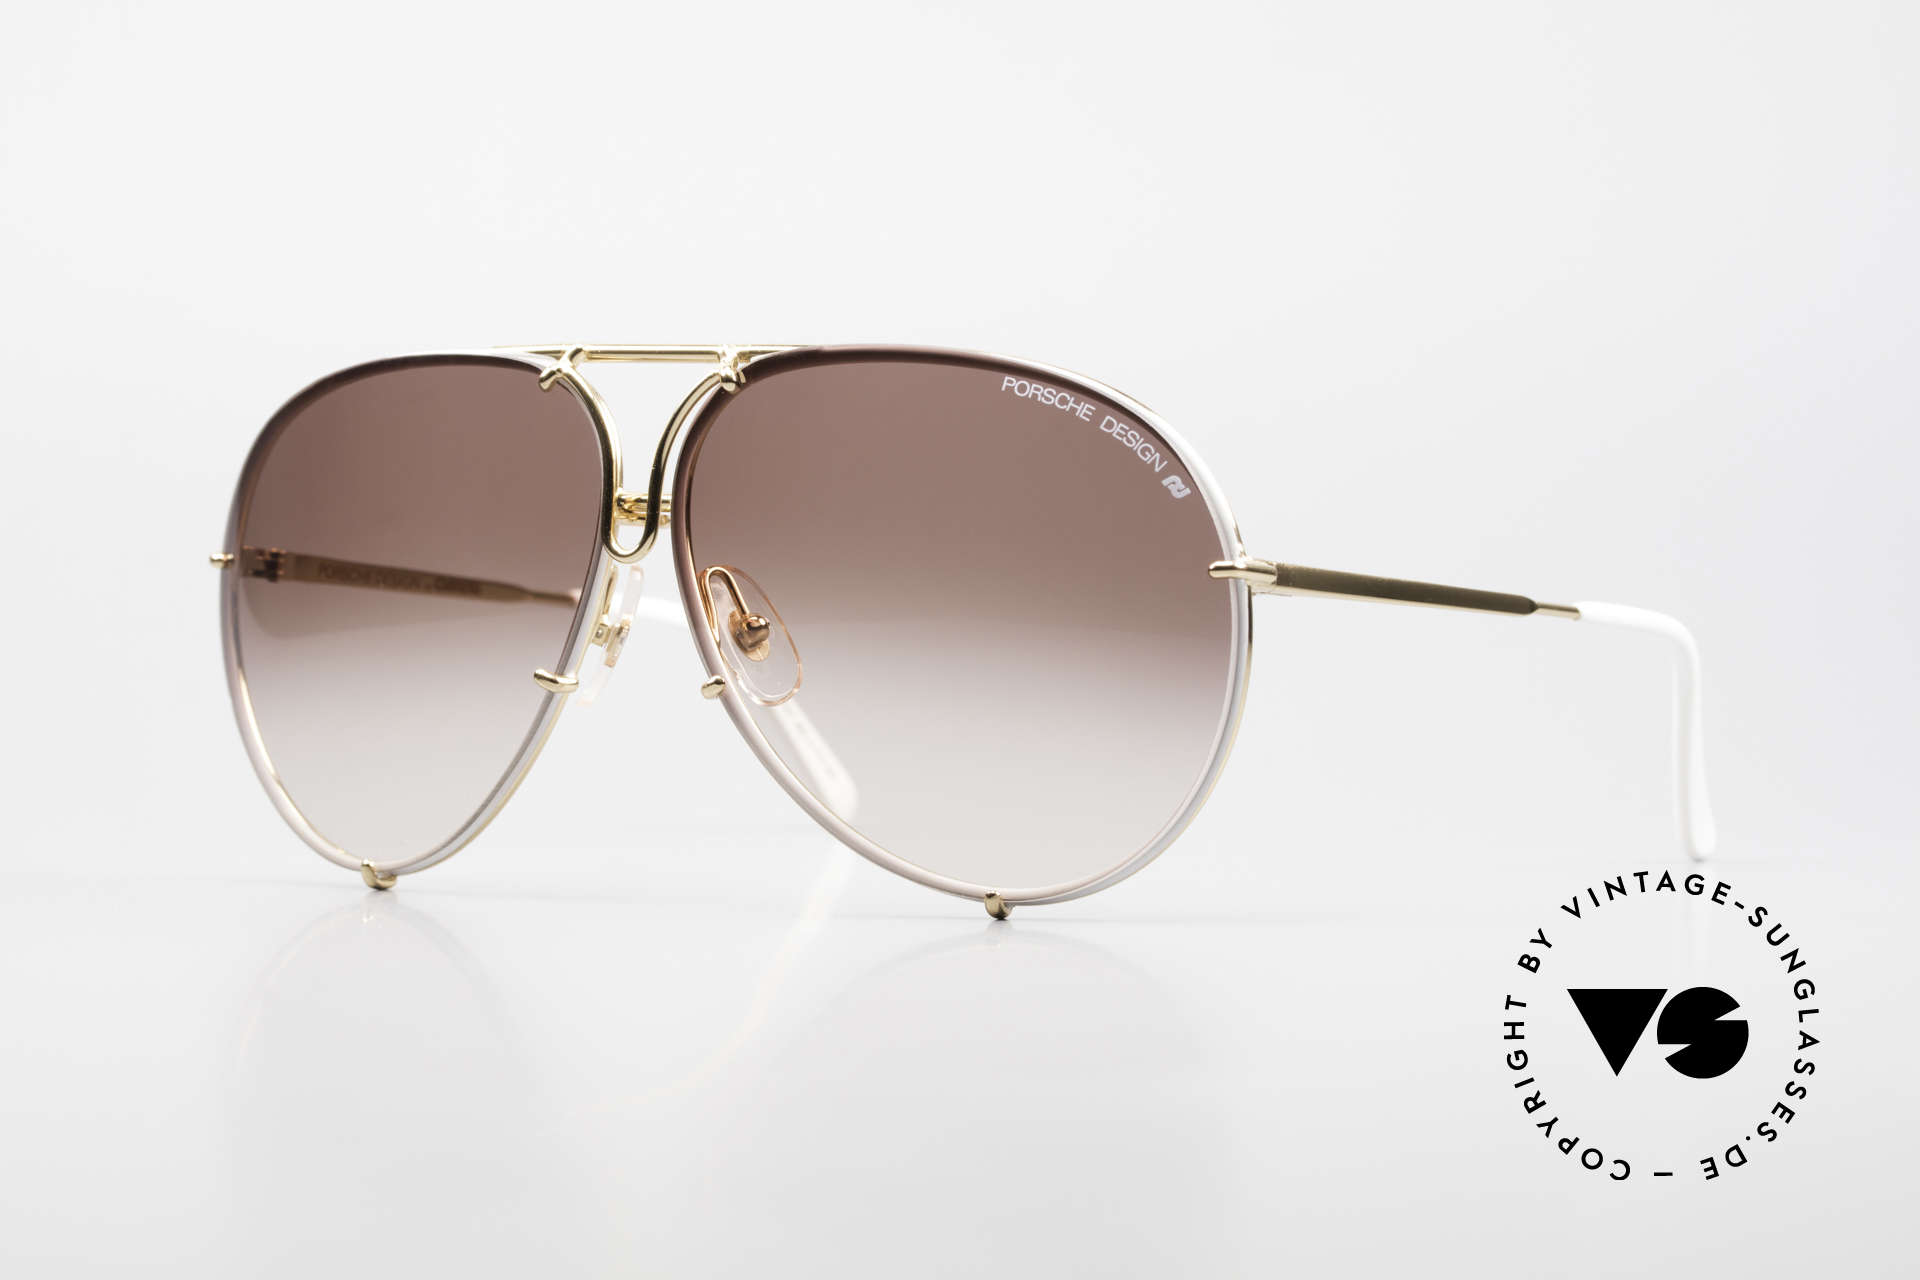 Porsche 5623 Special Edition Vintage Shades, vintage PORSCHE Design by Carrera shades from 1987, Made for Men and Women